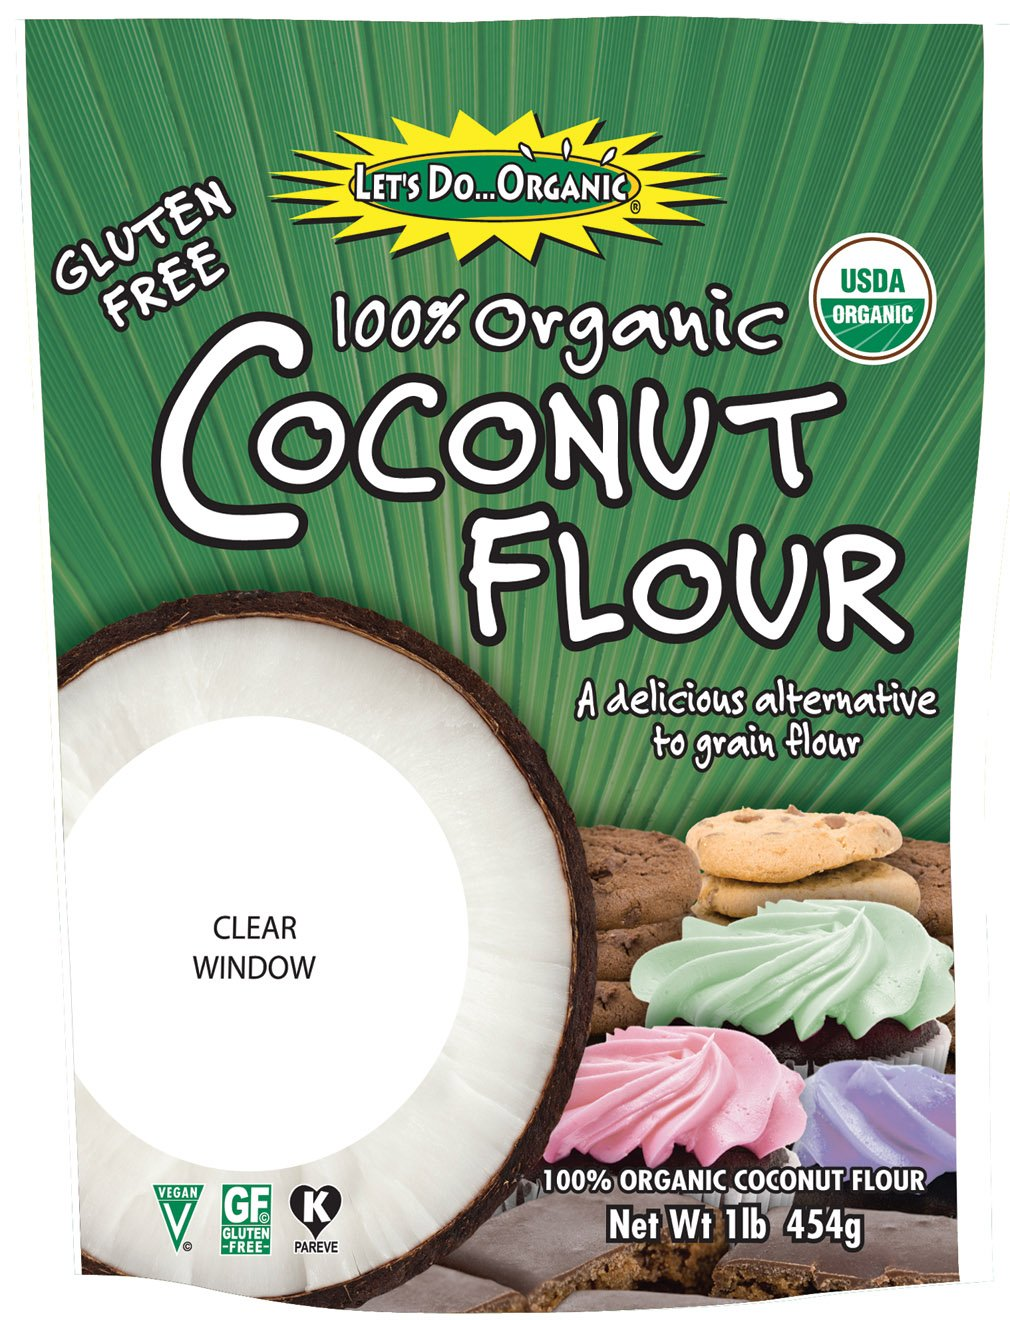 Let's Do Organic Coconut Flour, 16-OuncePouches (Pack of 6)